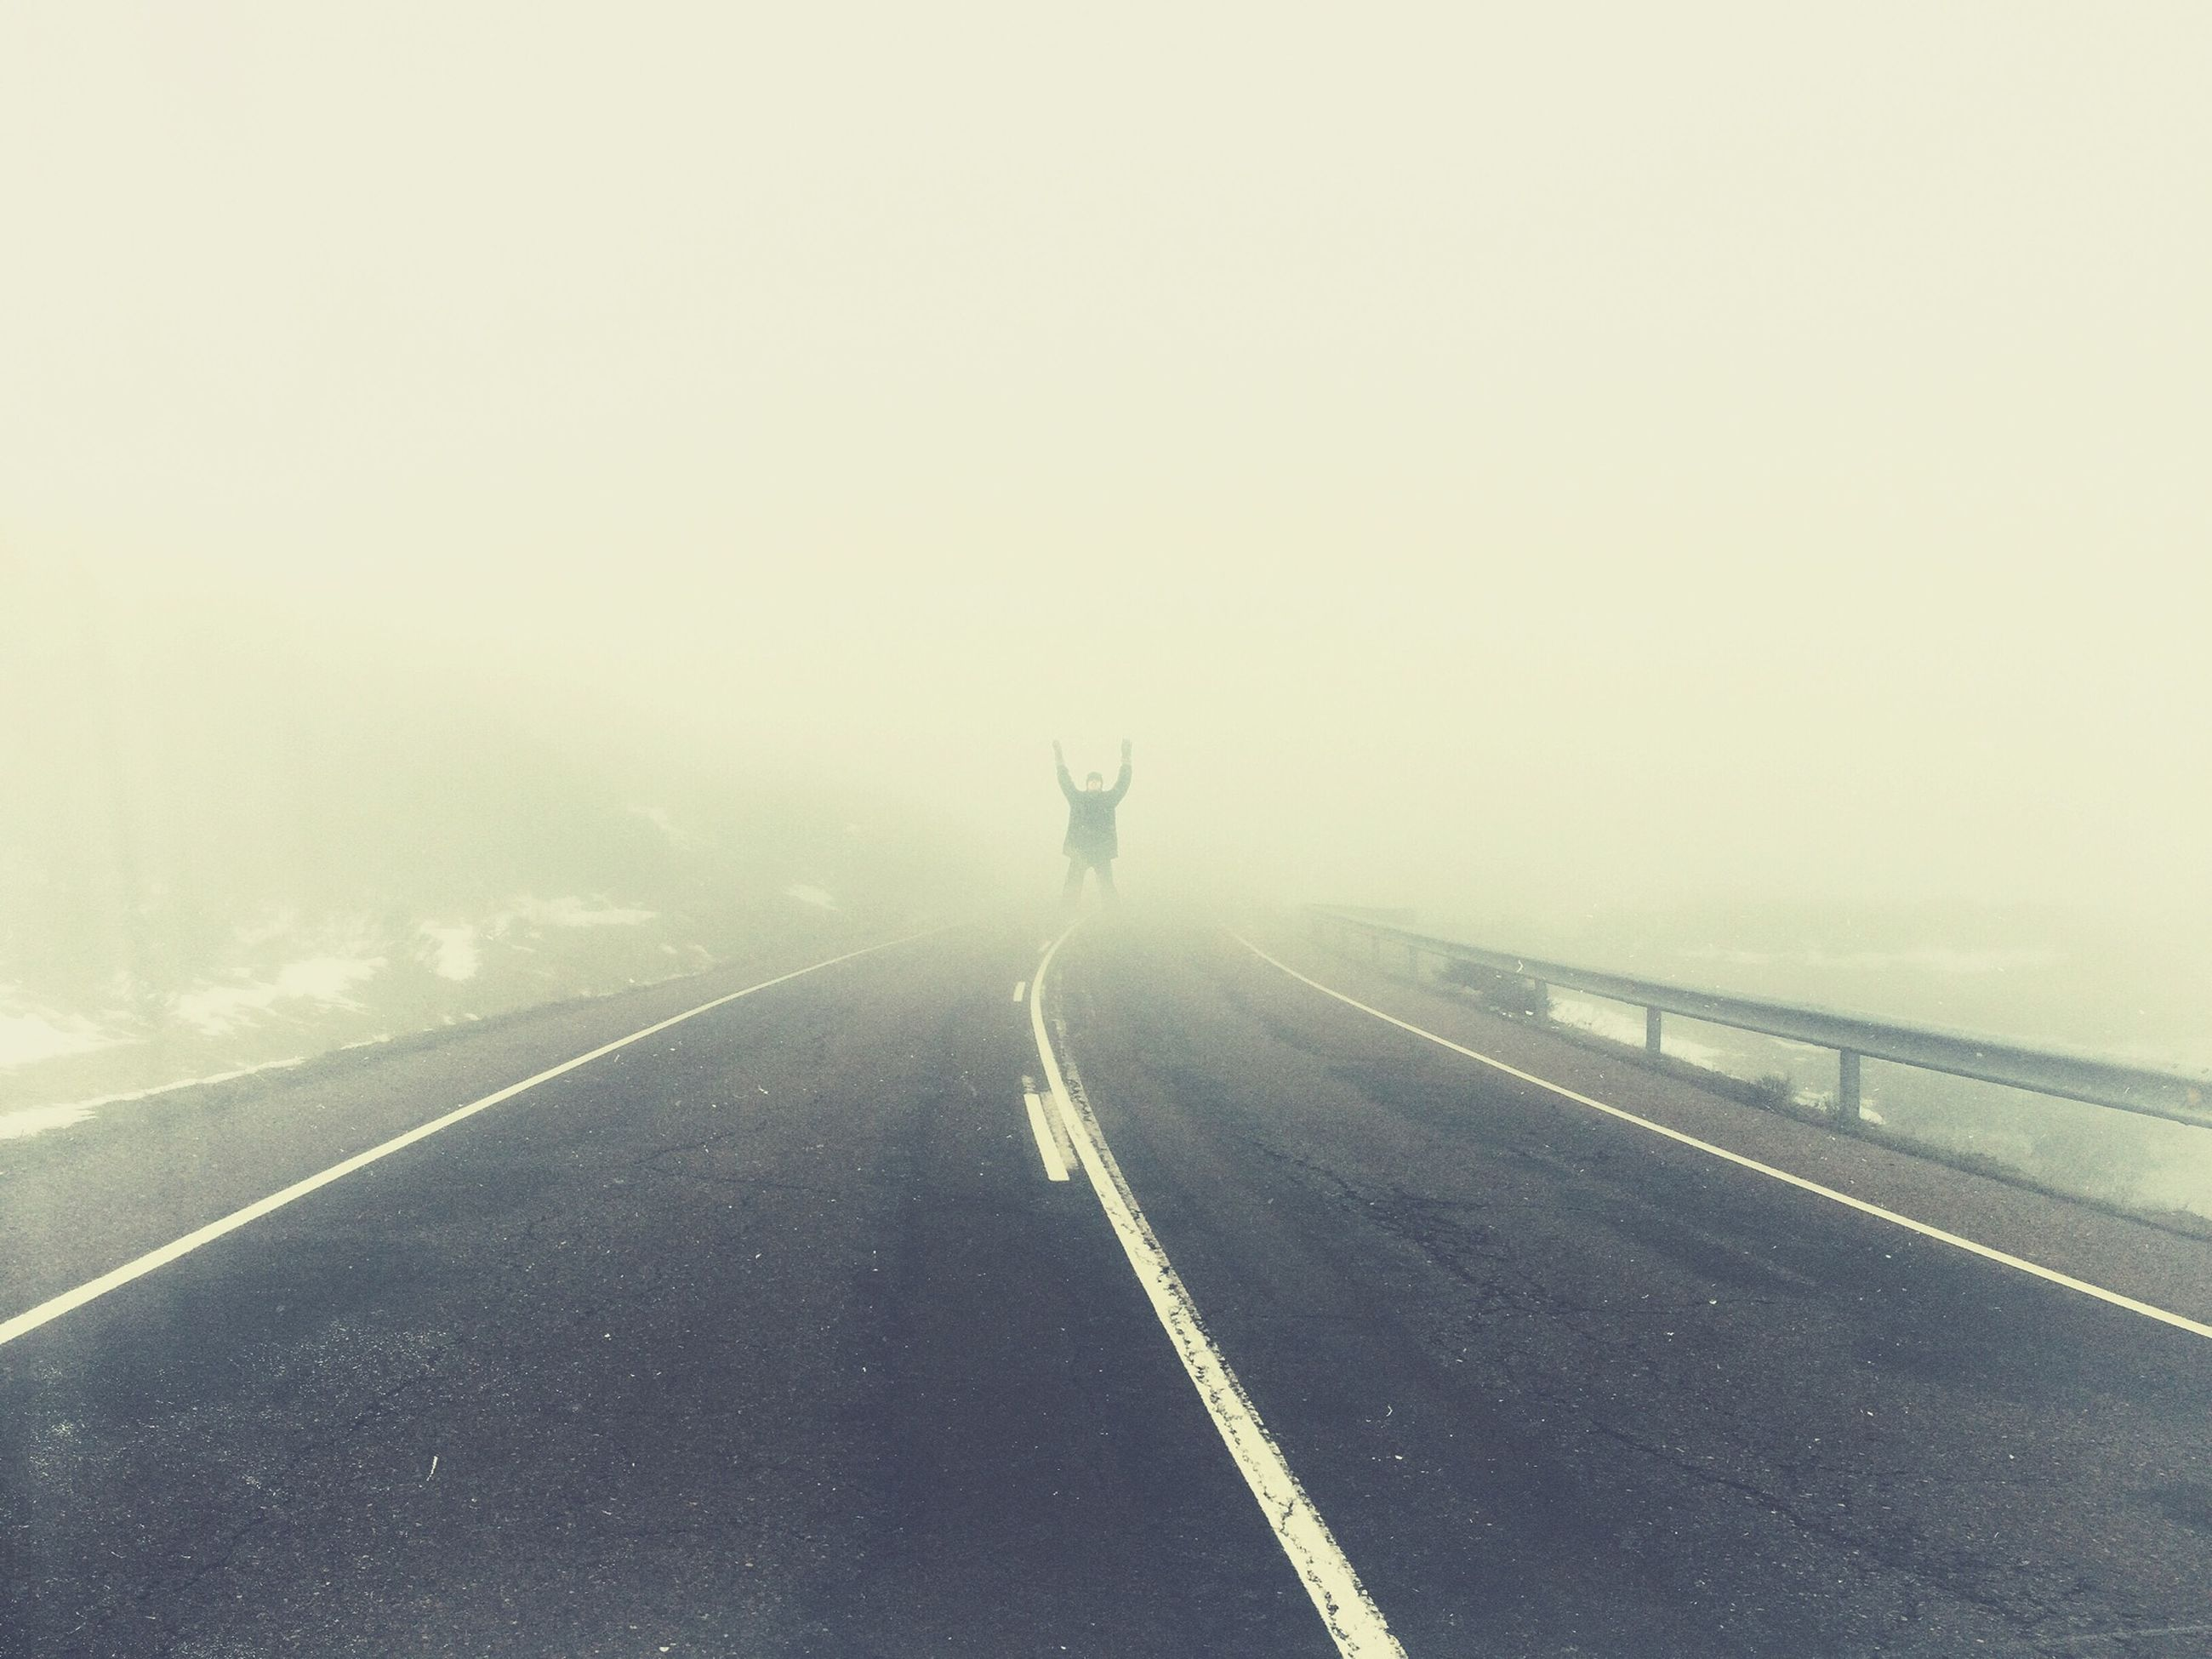 the way forward, transportation, road, road marking, diminishing perspective, vanishing point, copy space, fog, rear view, country road, walking, asphalt, full length, sky, on the move, long, day